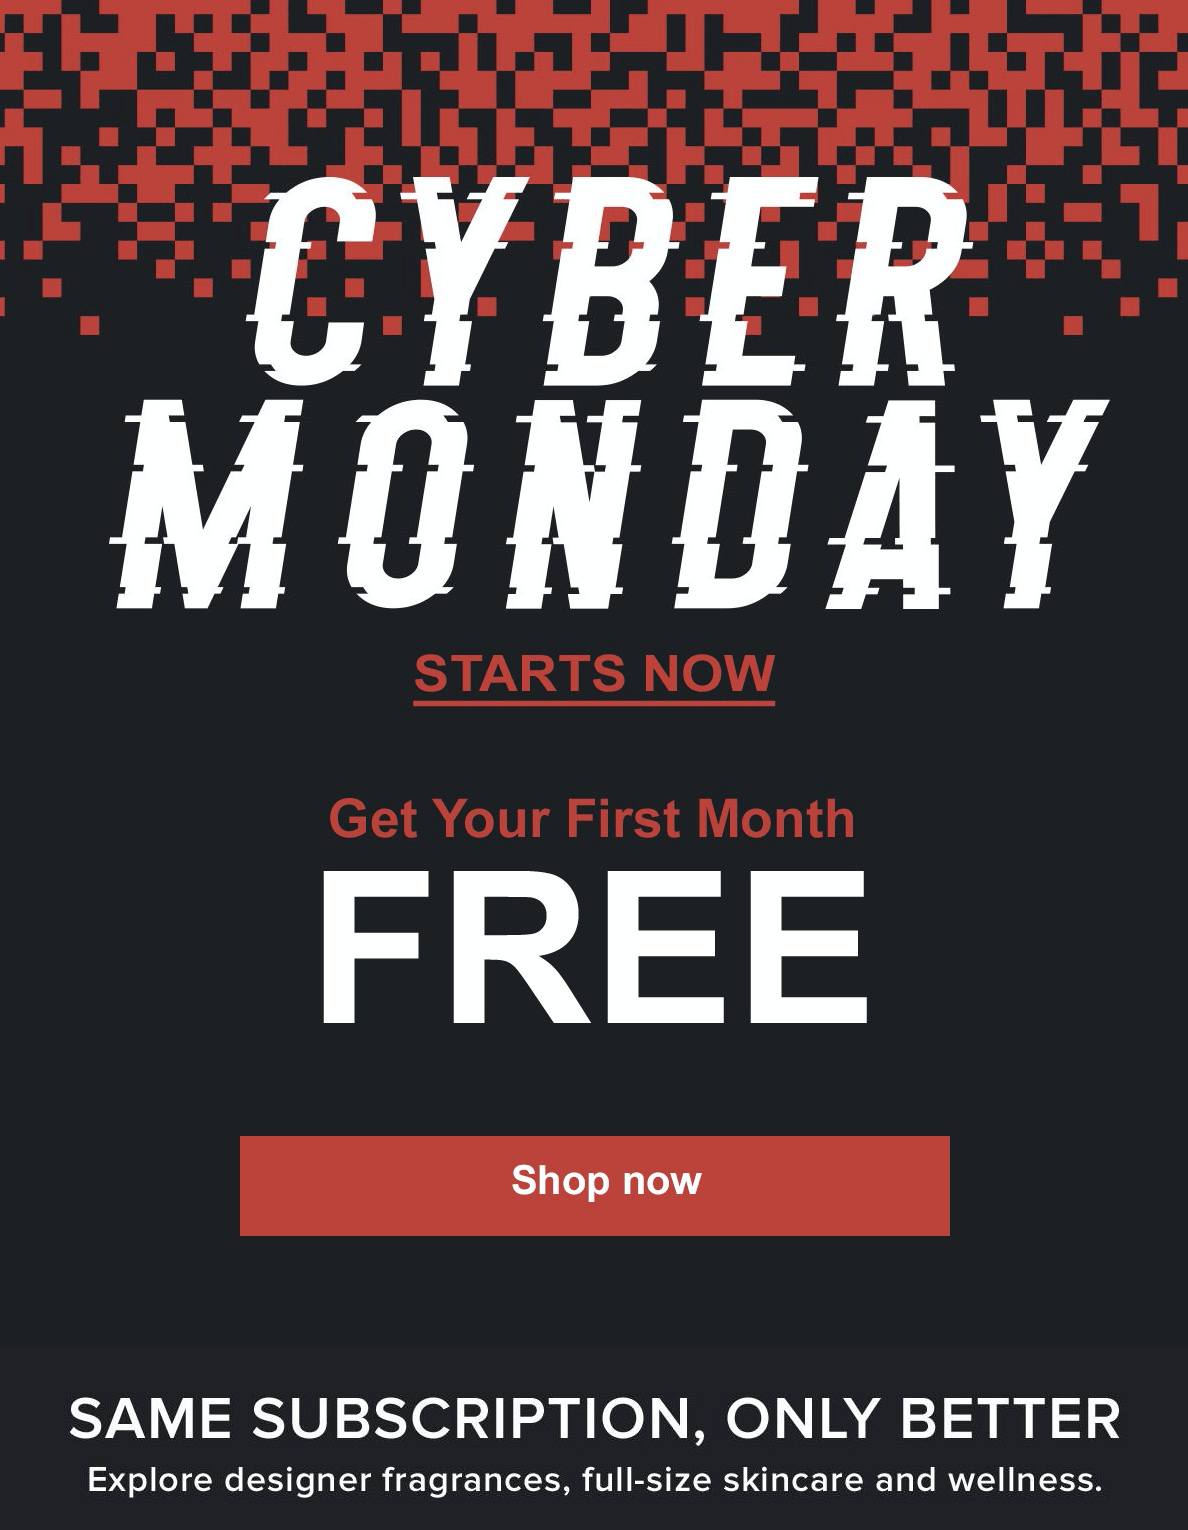 Scentbird Cyber Monday Deal First Month Free Just Pay 3 Shipping Hello Subscription